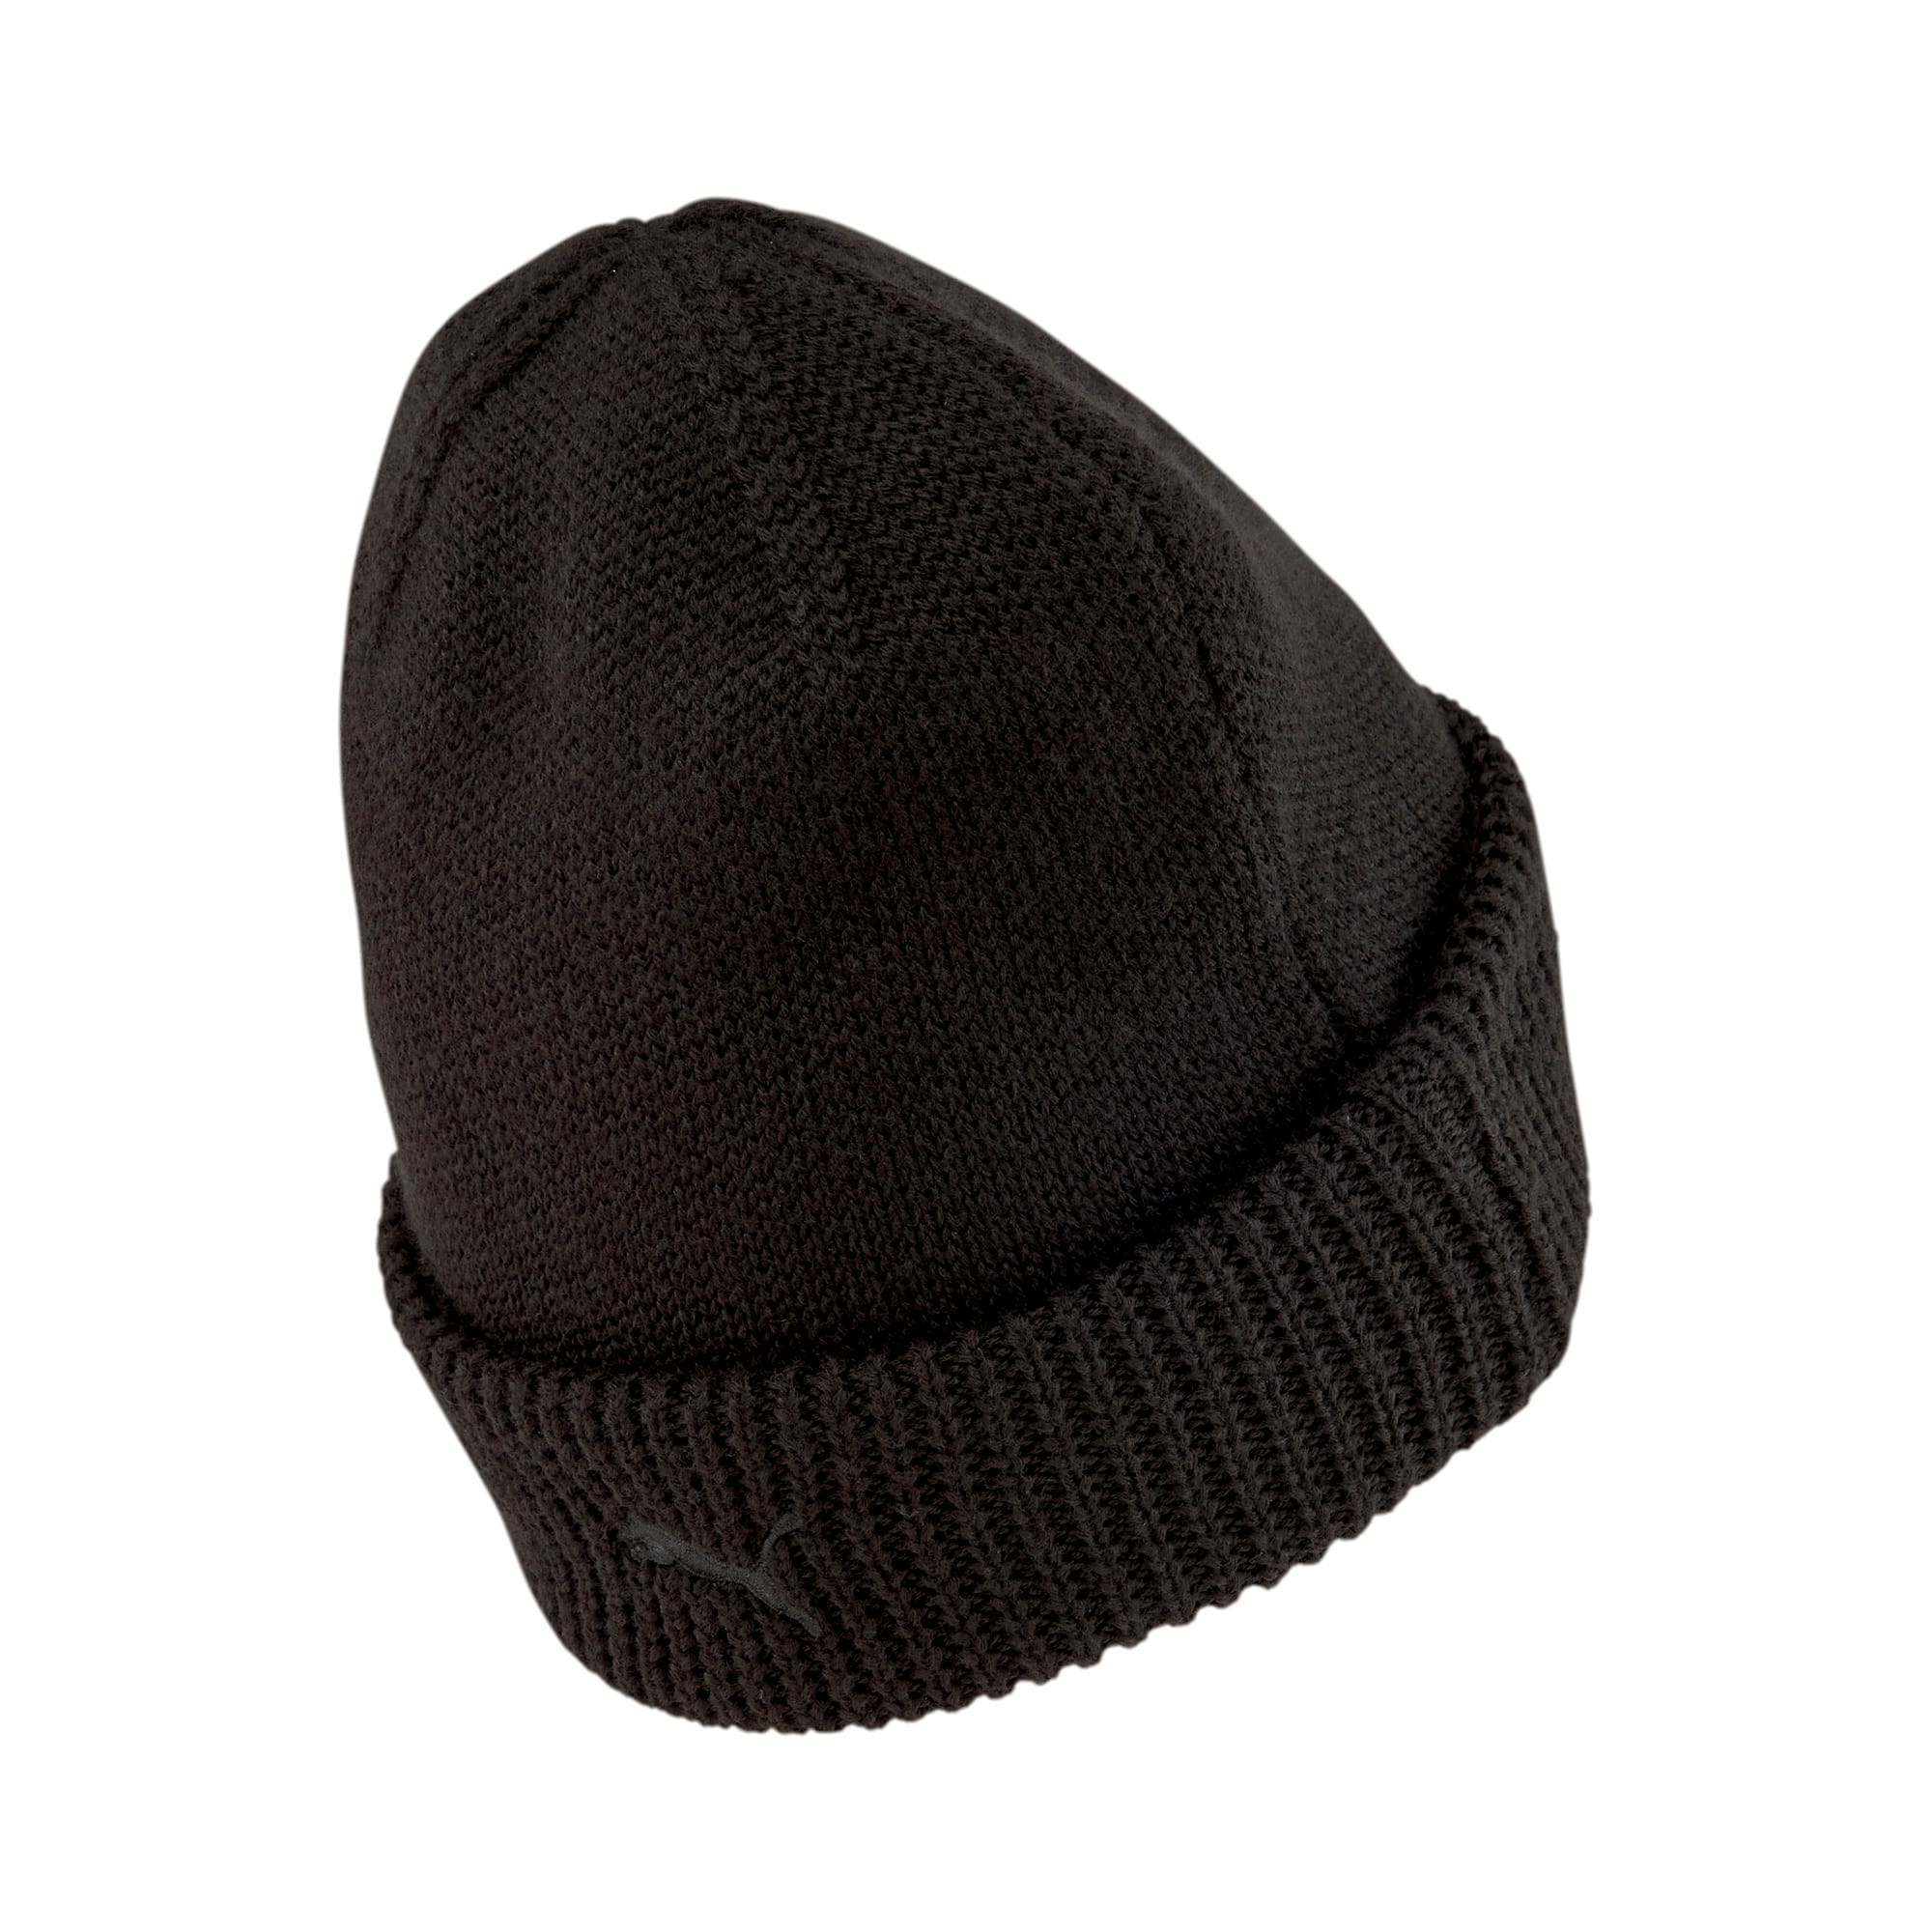 Thumbnail 3 of Porsche Design Knit Beanie, Puma Black, medium